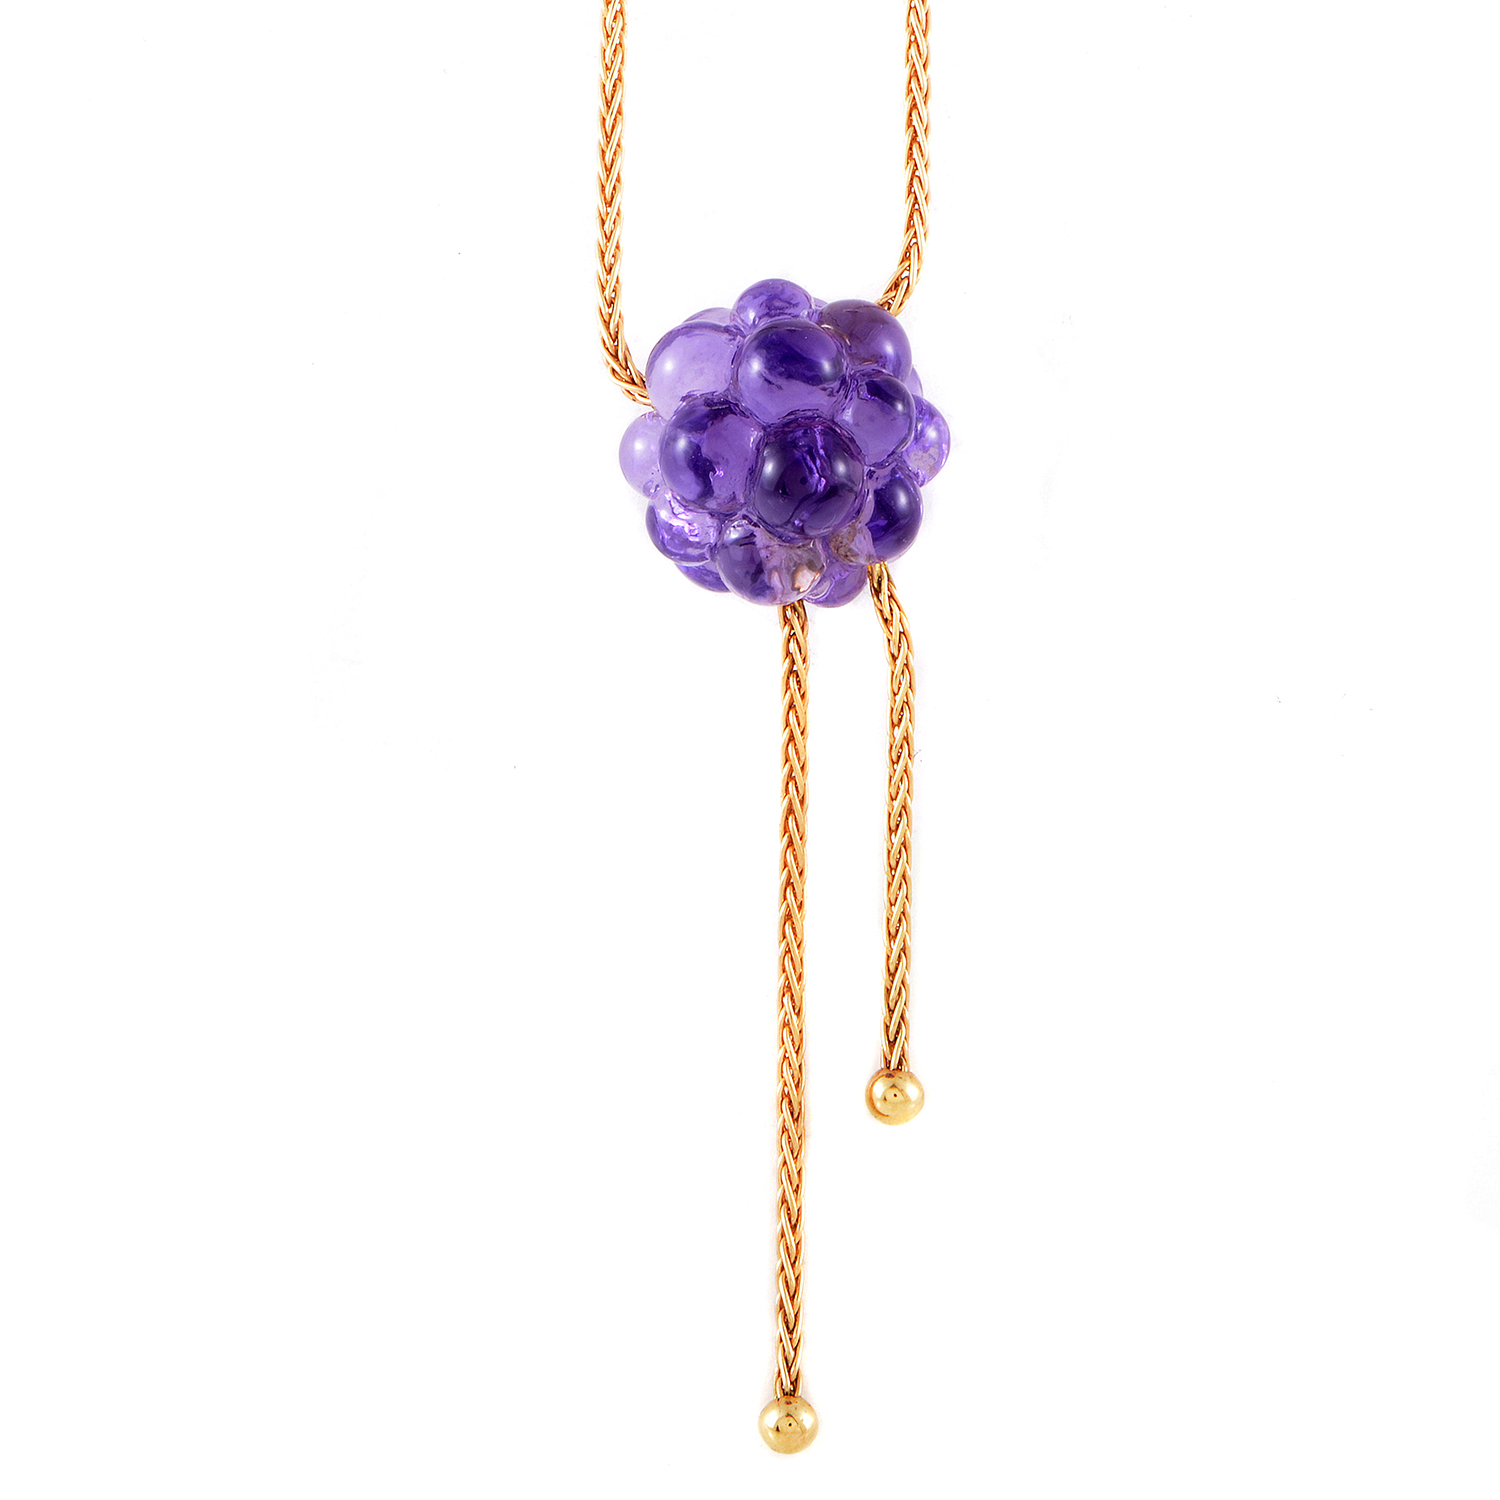 Boucheron Women's 18K Rose Gold Bubbled Amethyst Sphere Pendant Necklace